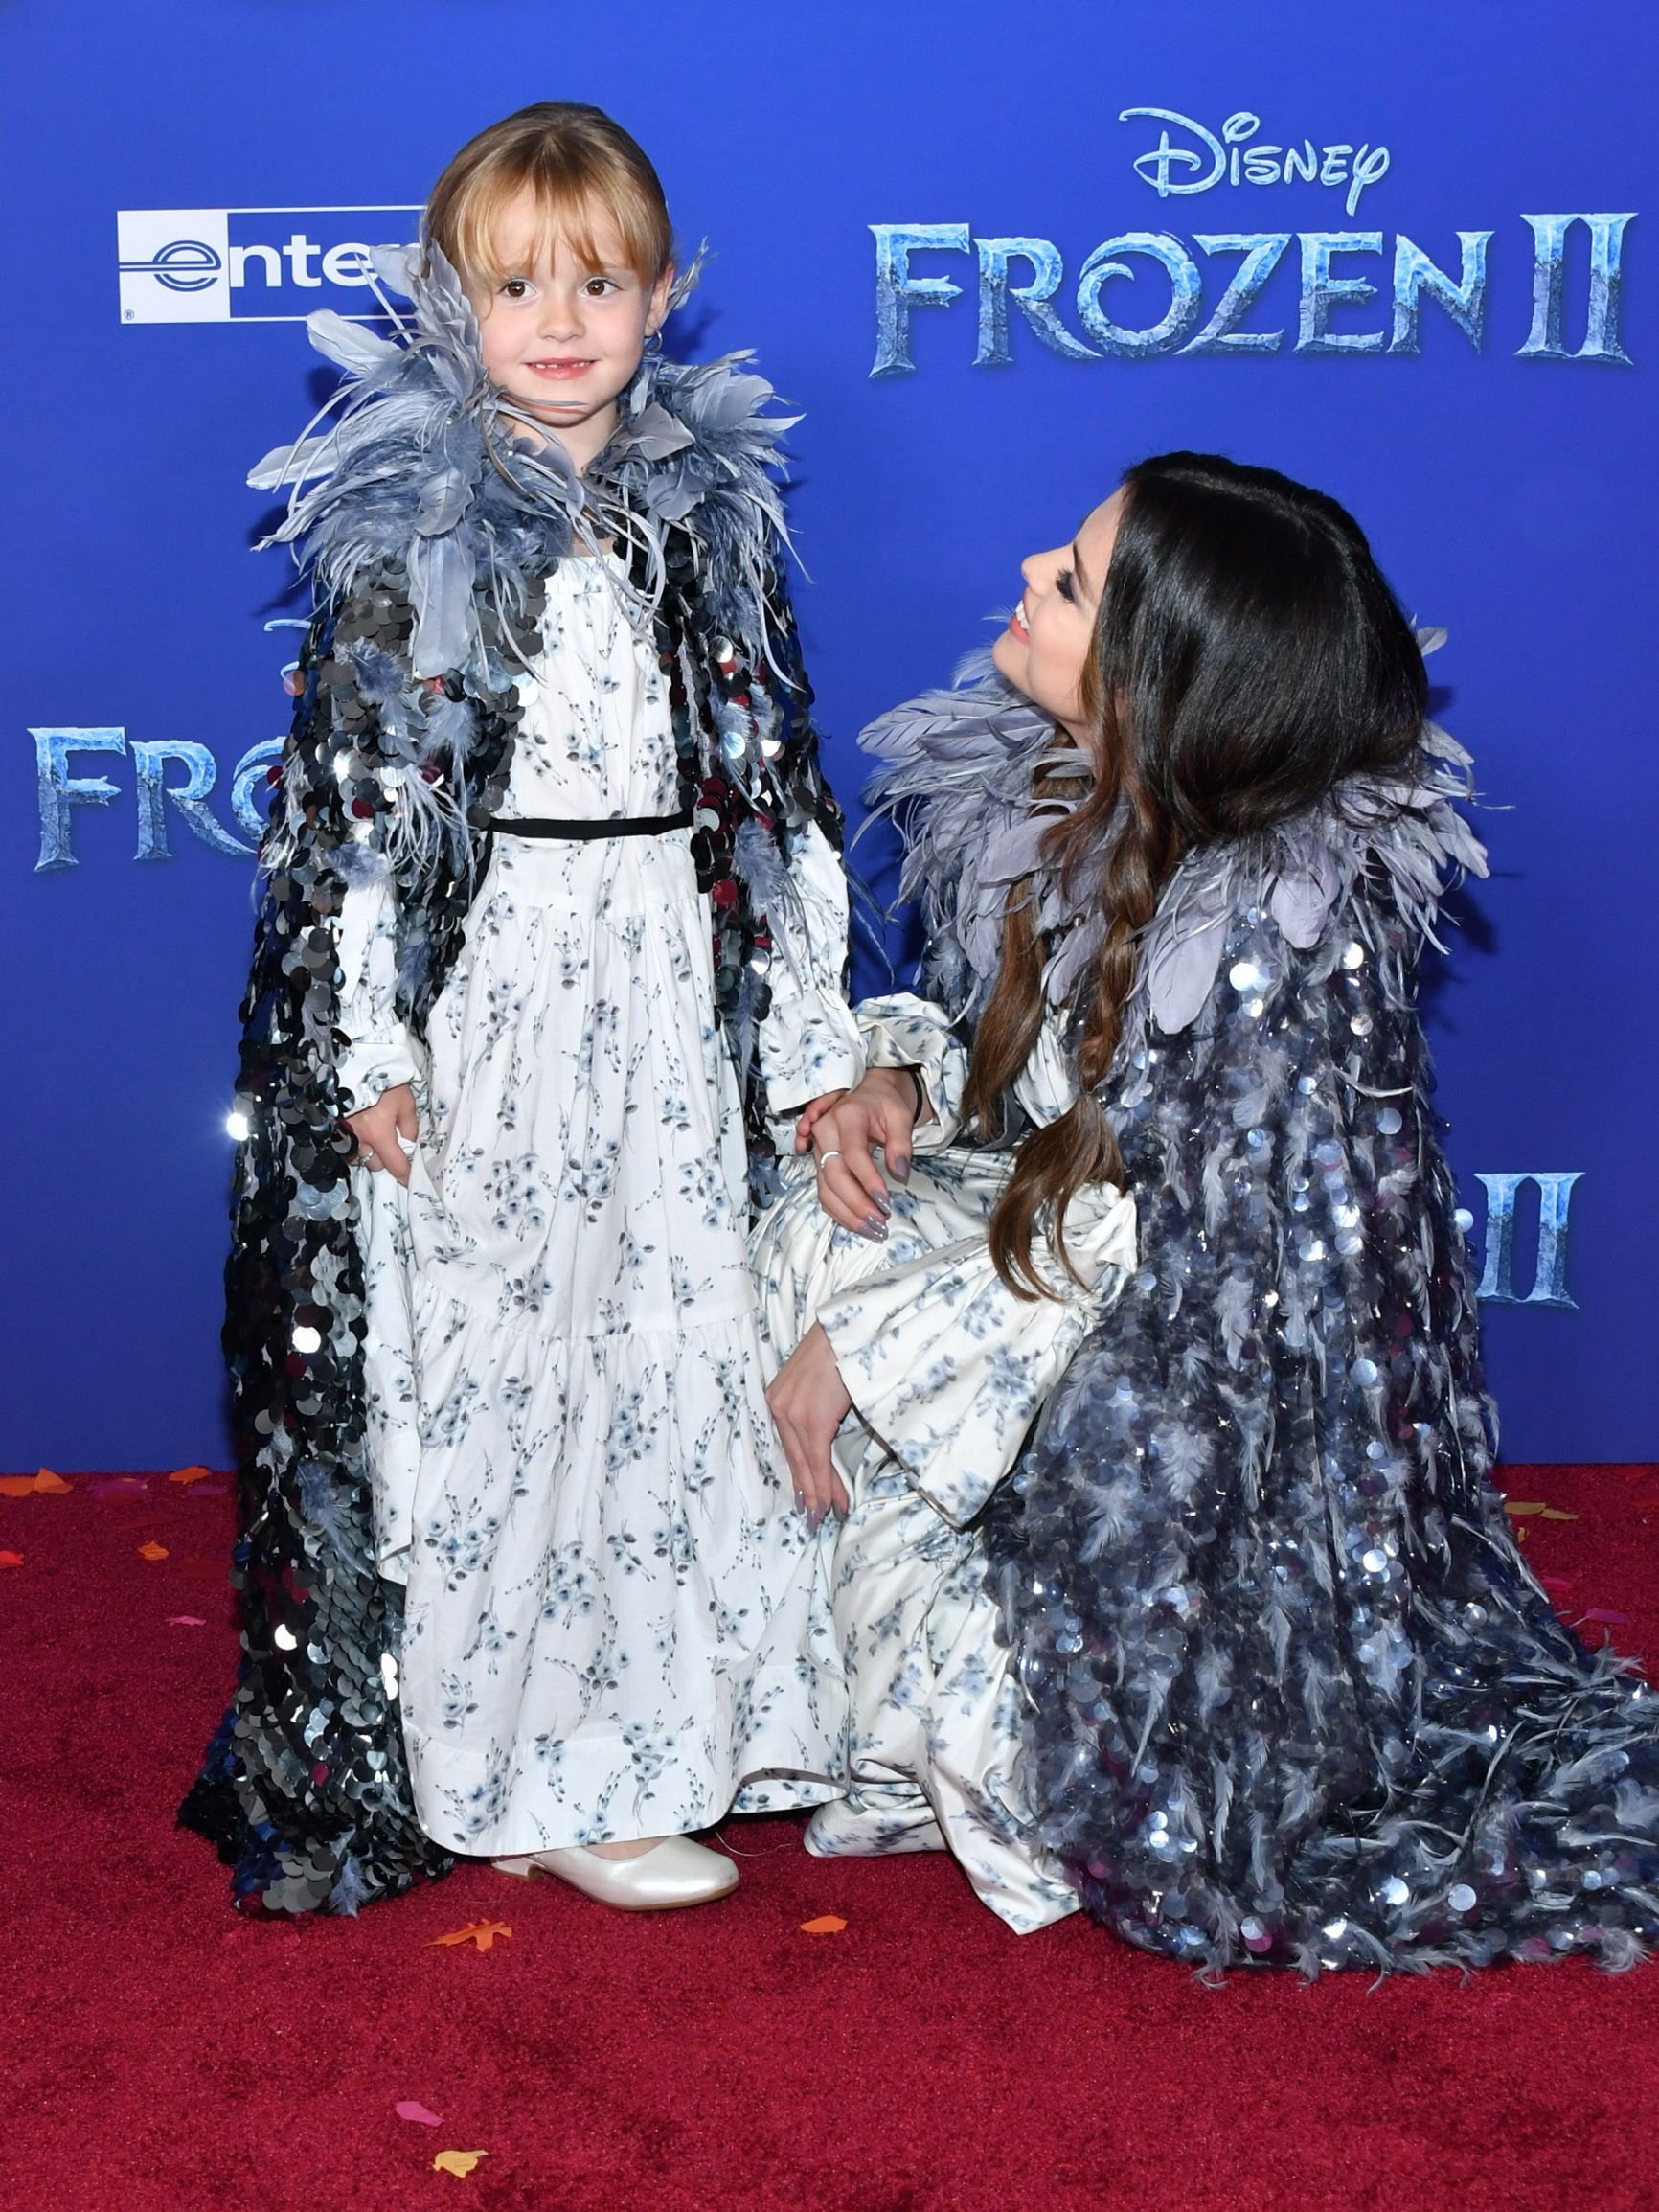 HOLLYWOOD, CALIFORNIA - NOVEMBER 07: Gracie Teefey and Selena Gomez attend the premiere of Disney's